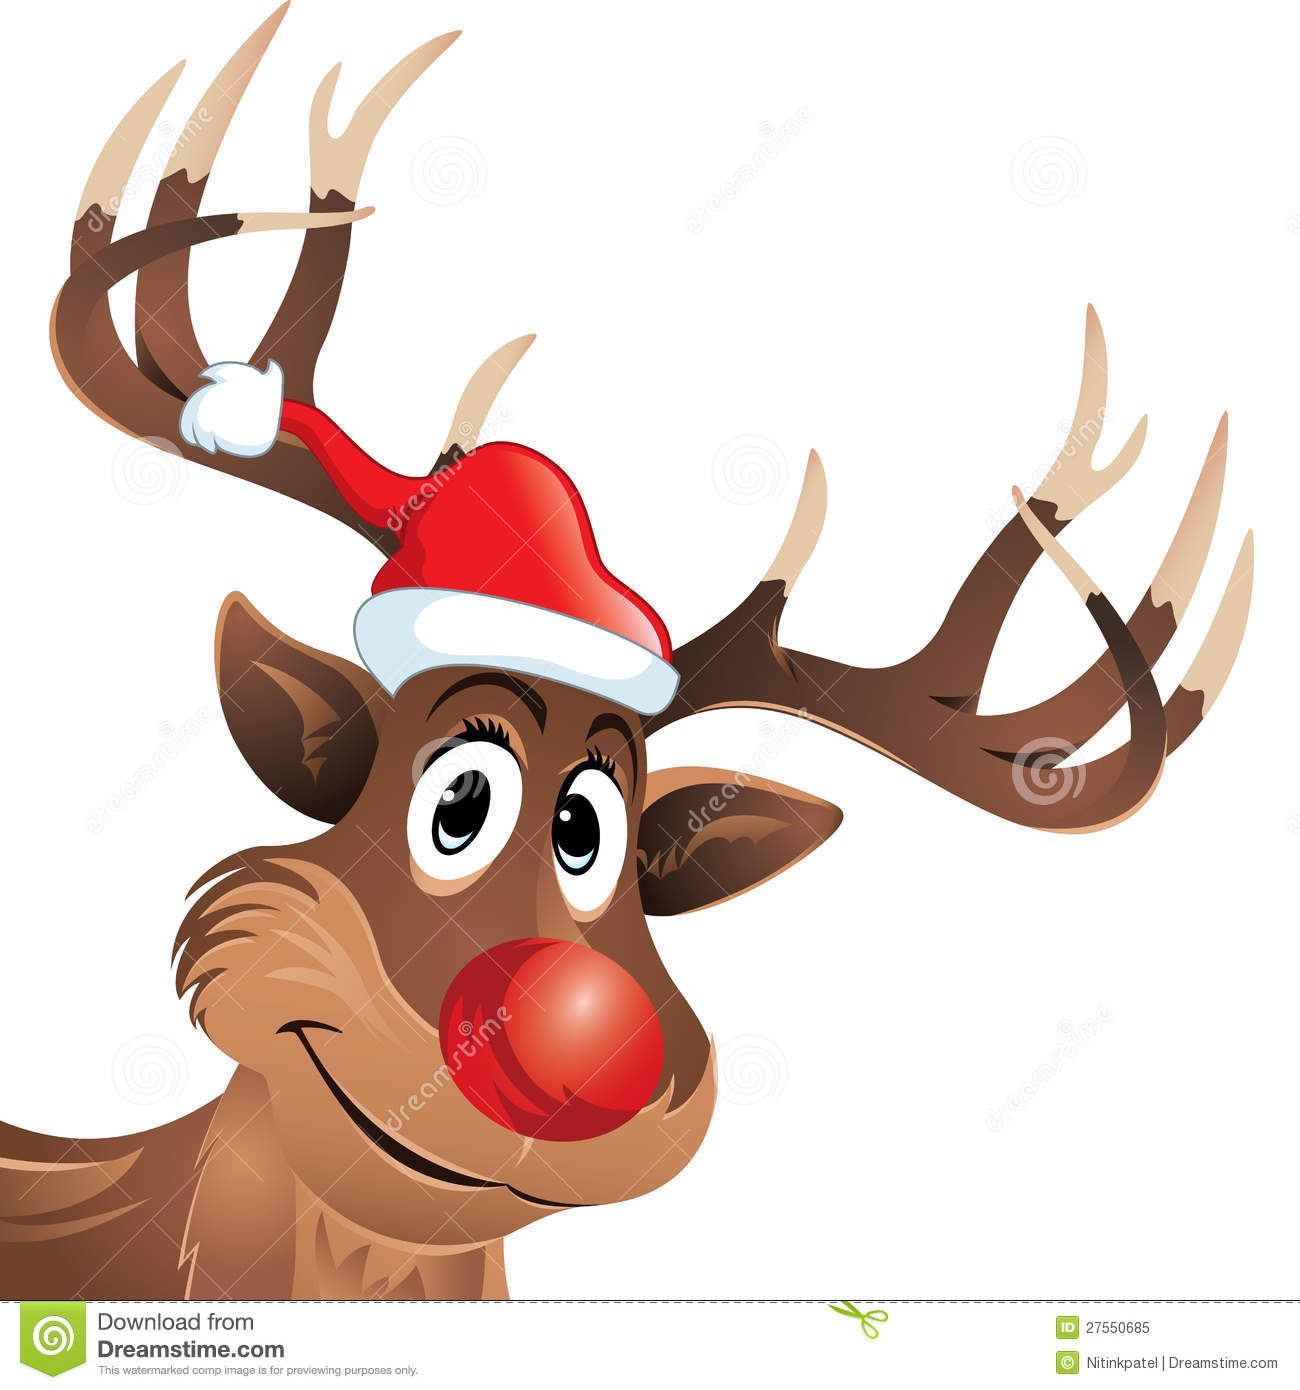 ... similar stock images of ` Rudolf the reindeer with red nose and hat